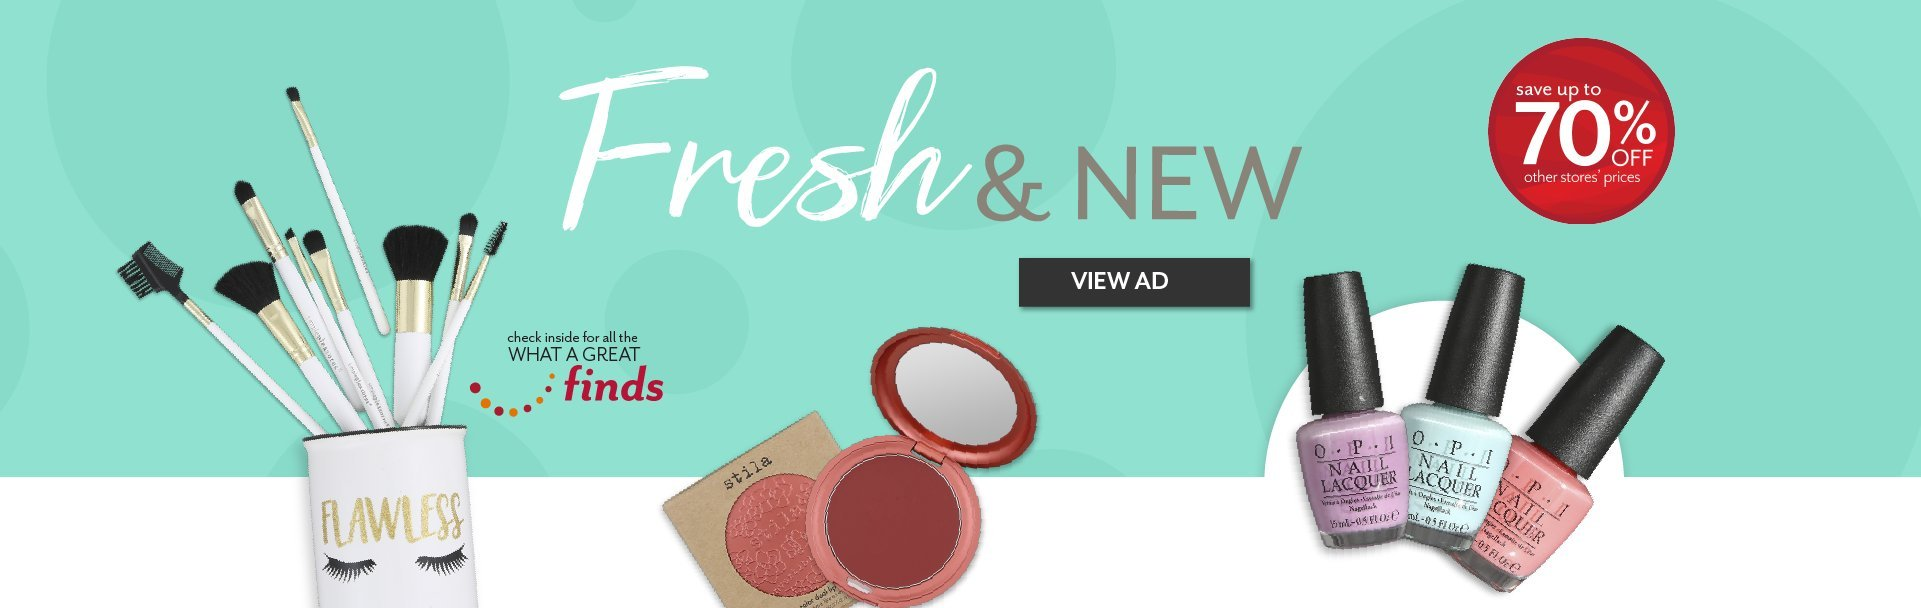 Shop the latest trends in Beauty at Bealls Outlet